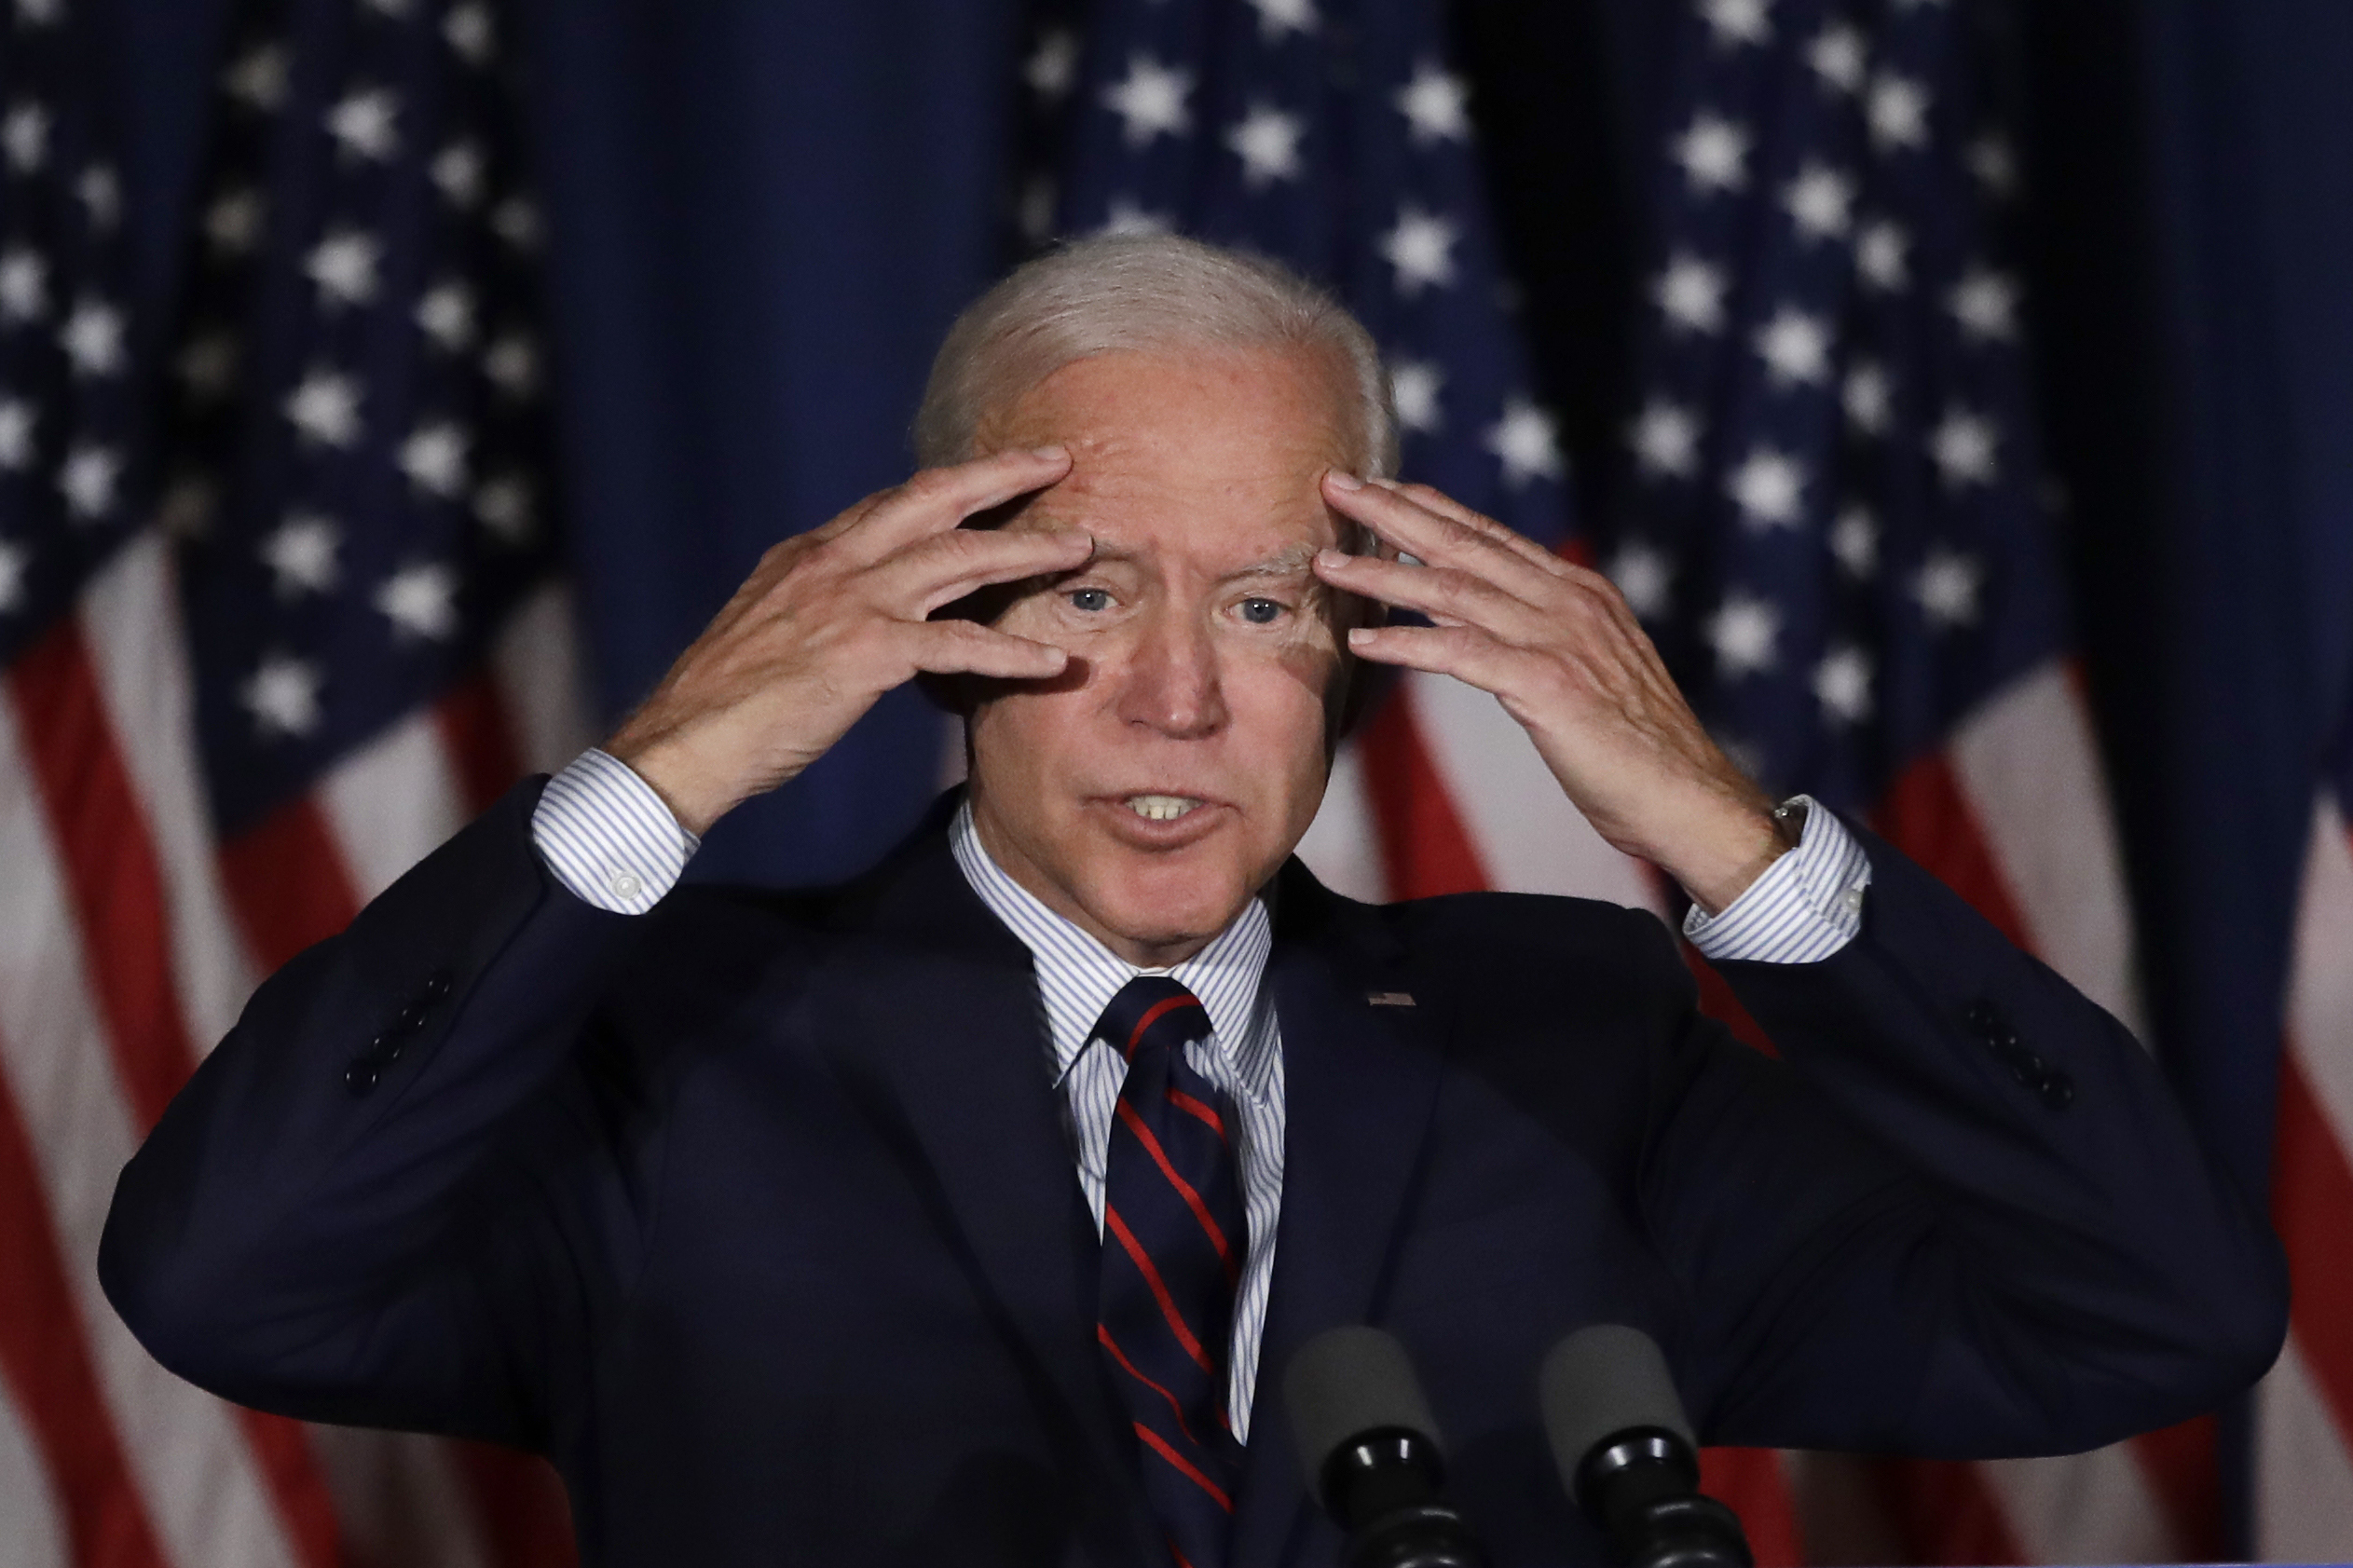 Joe Biden campaign, facing New York Times fire, panics